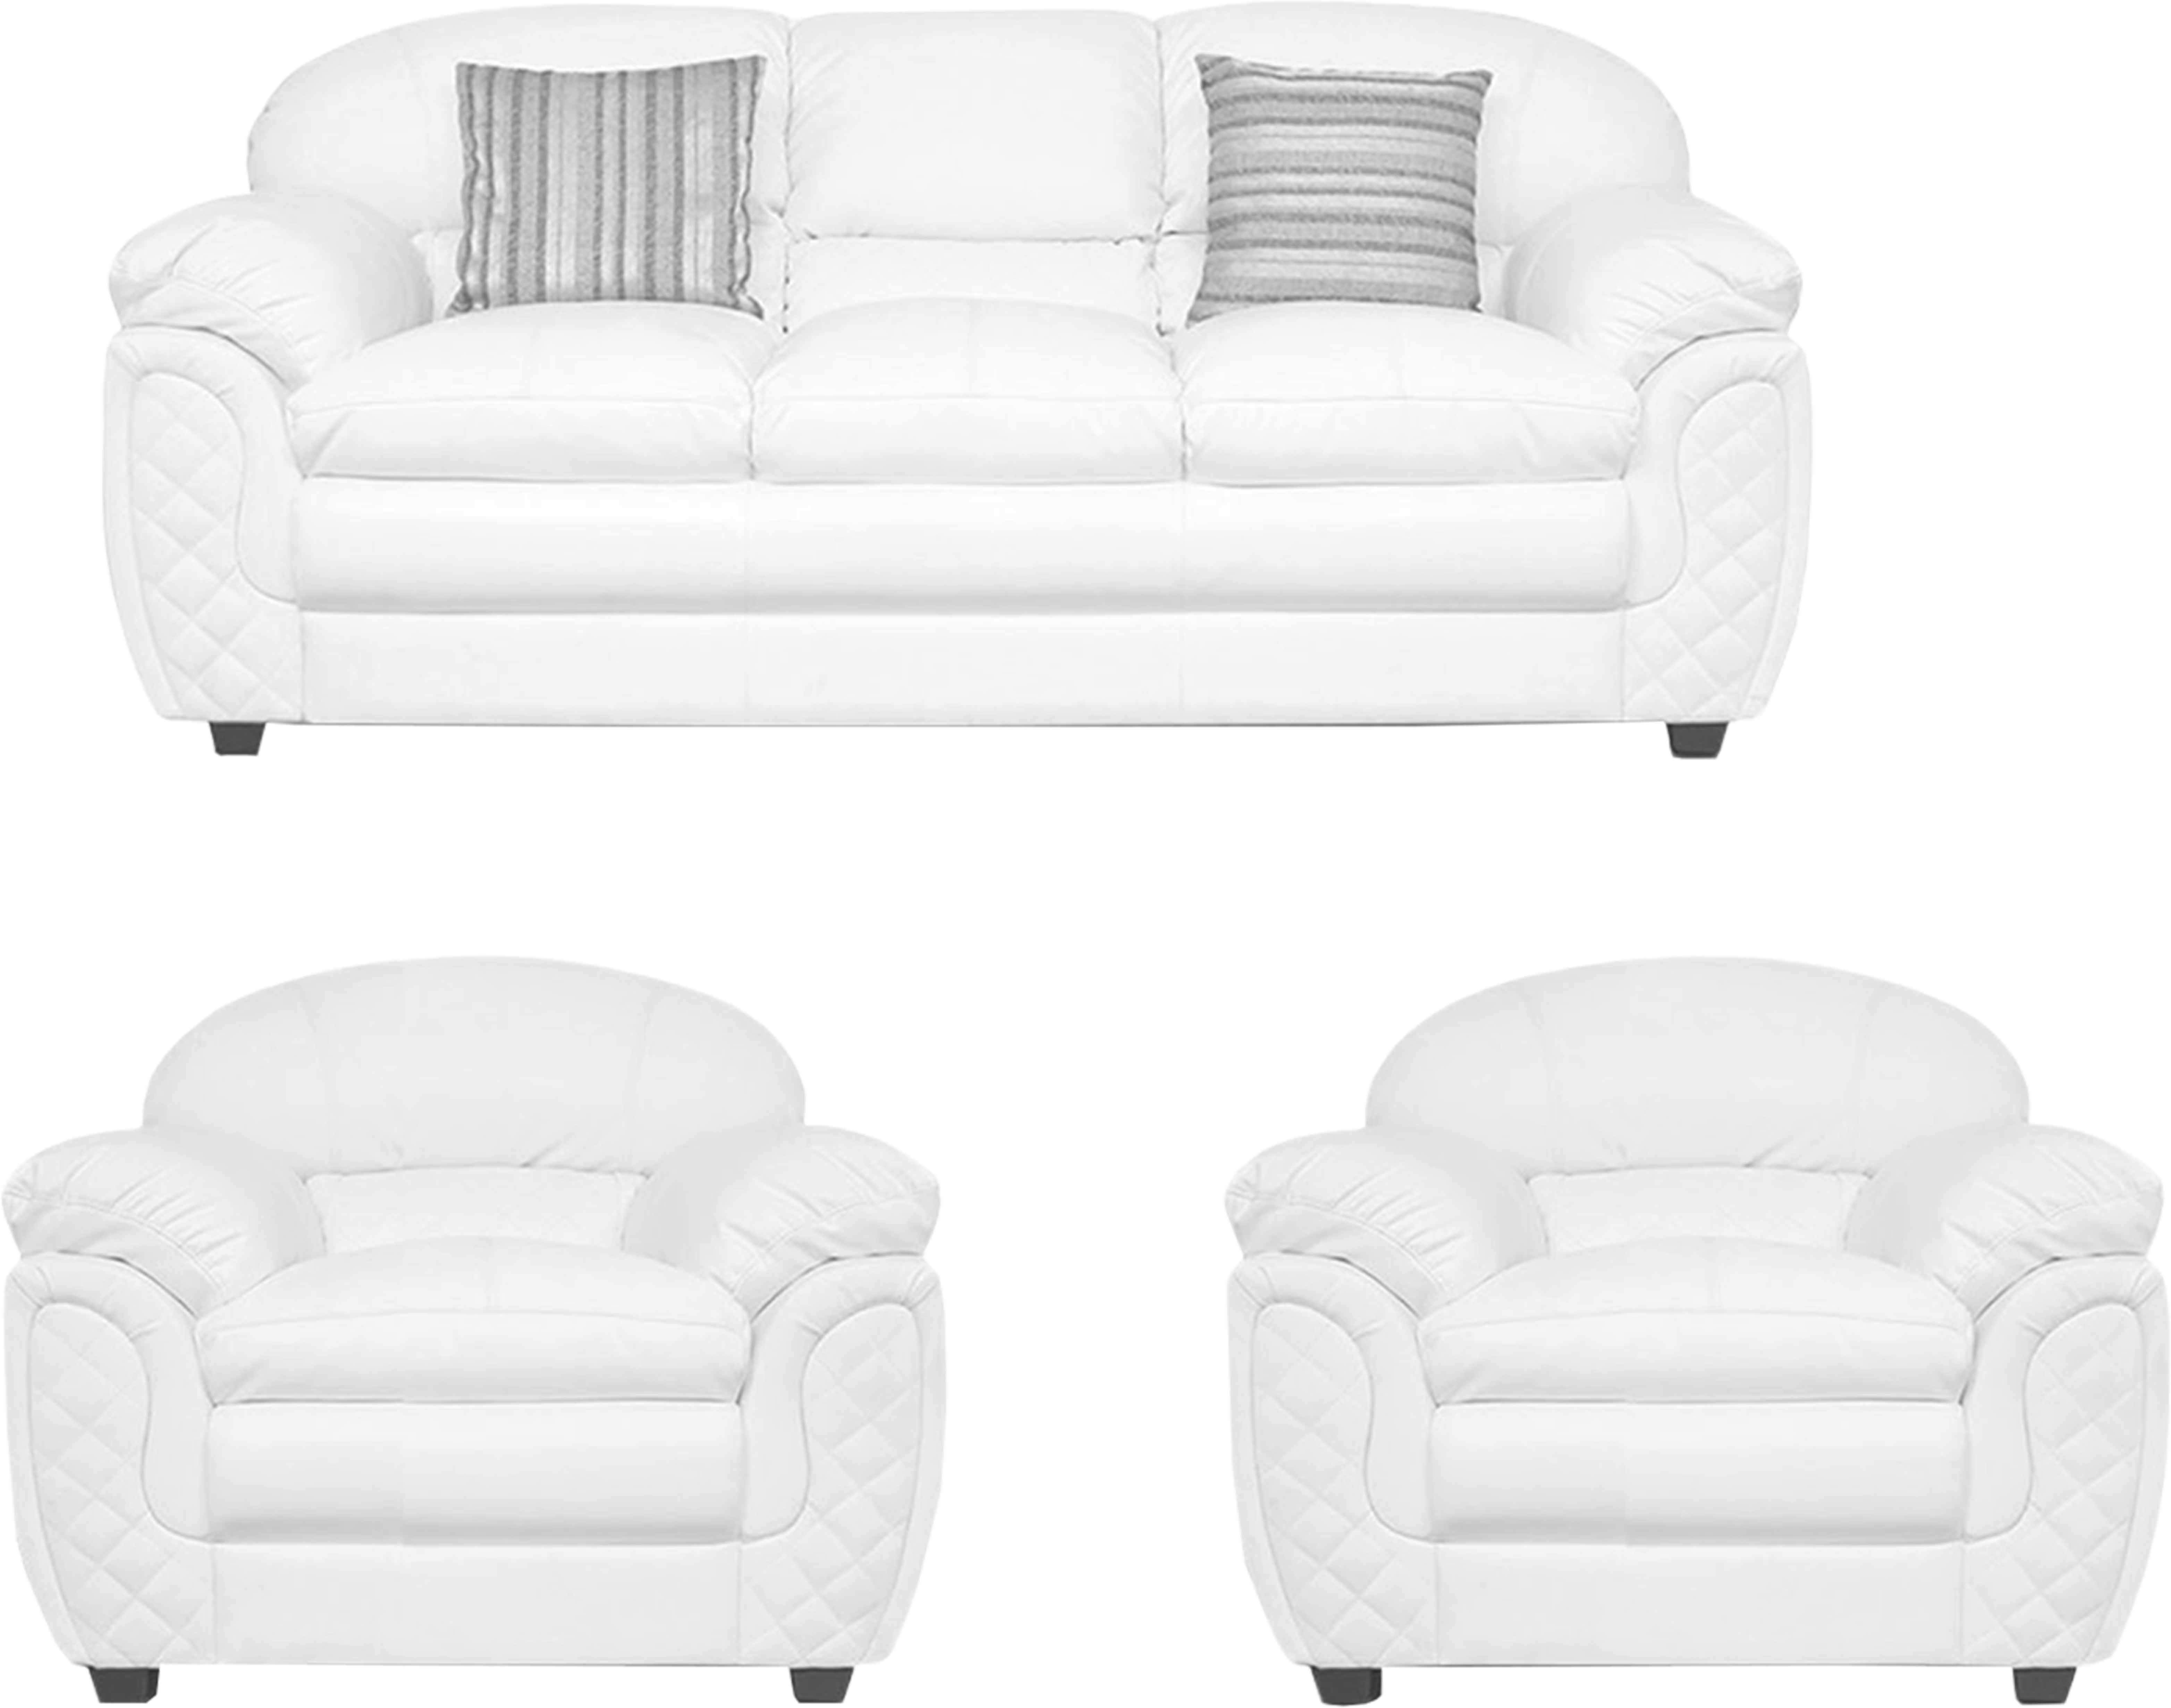 View ELEGANT FURNITURE Leatherette 3 + 1 + 1 WHITE Sofa Set(Configuration - PRE ASSEMBELED) Furniture (ELEGANT FURNITURE)